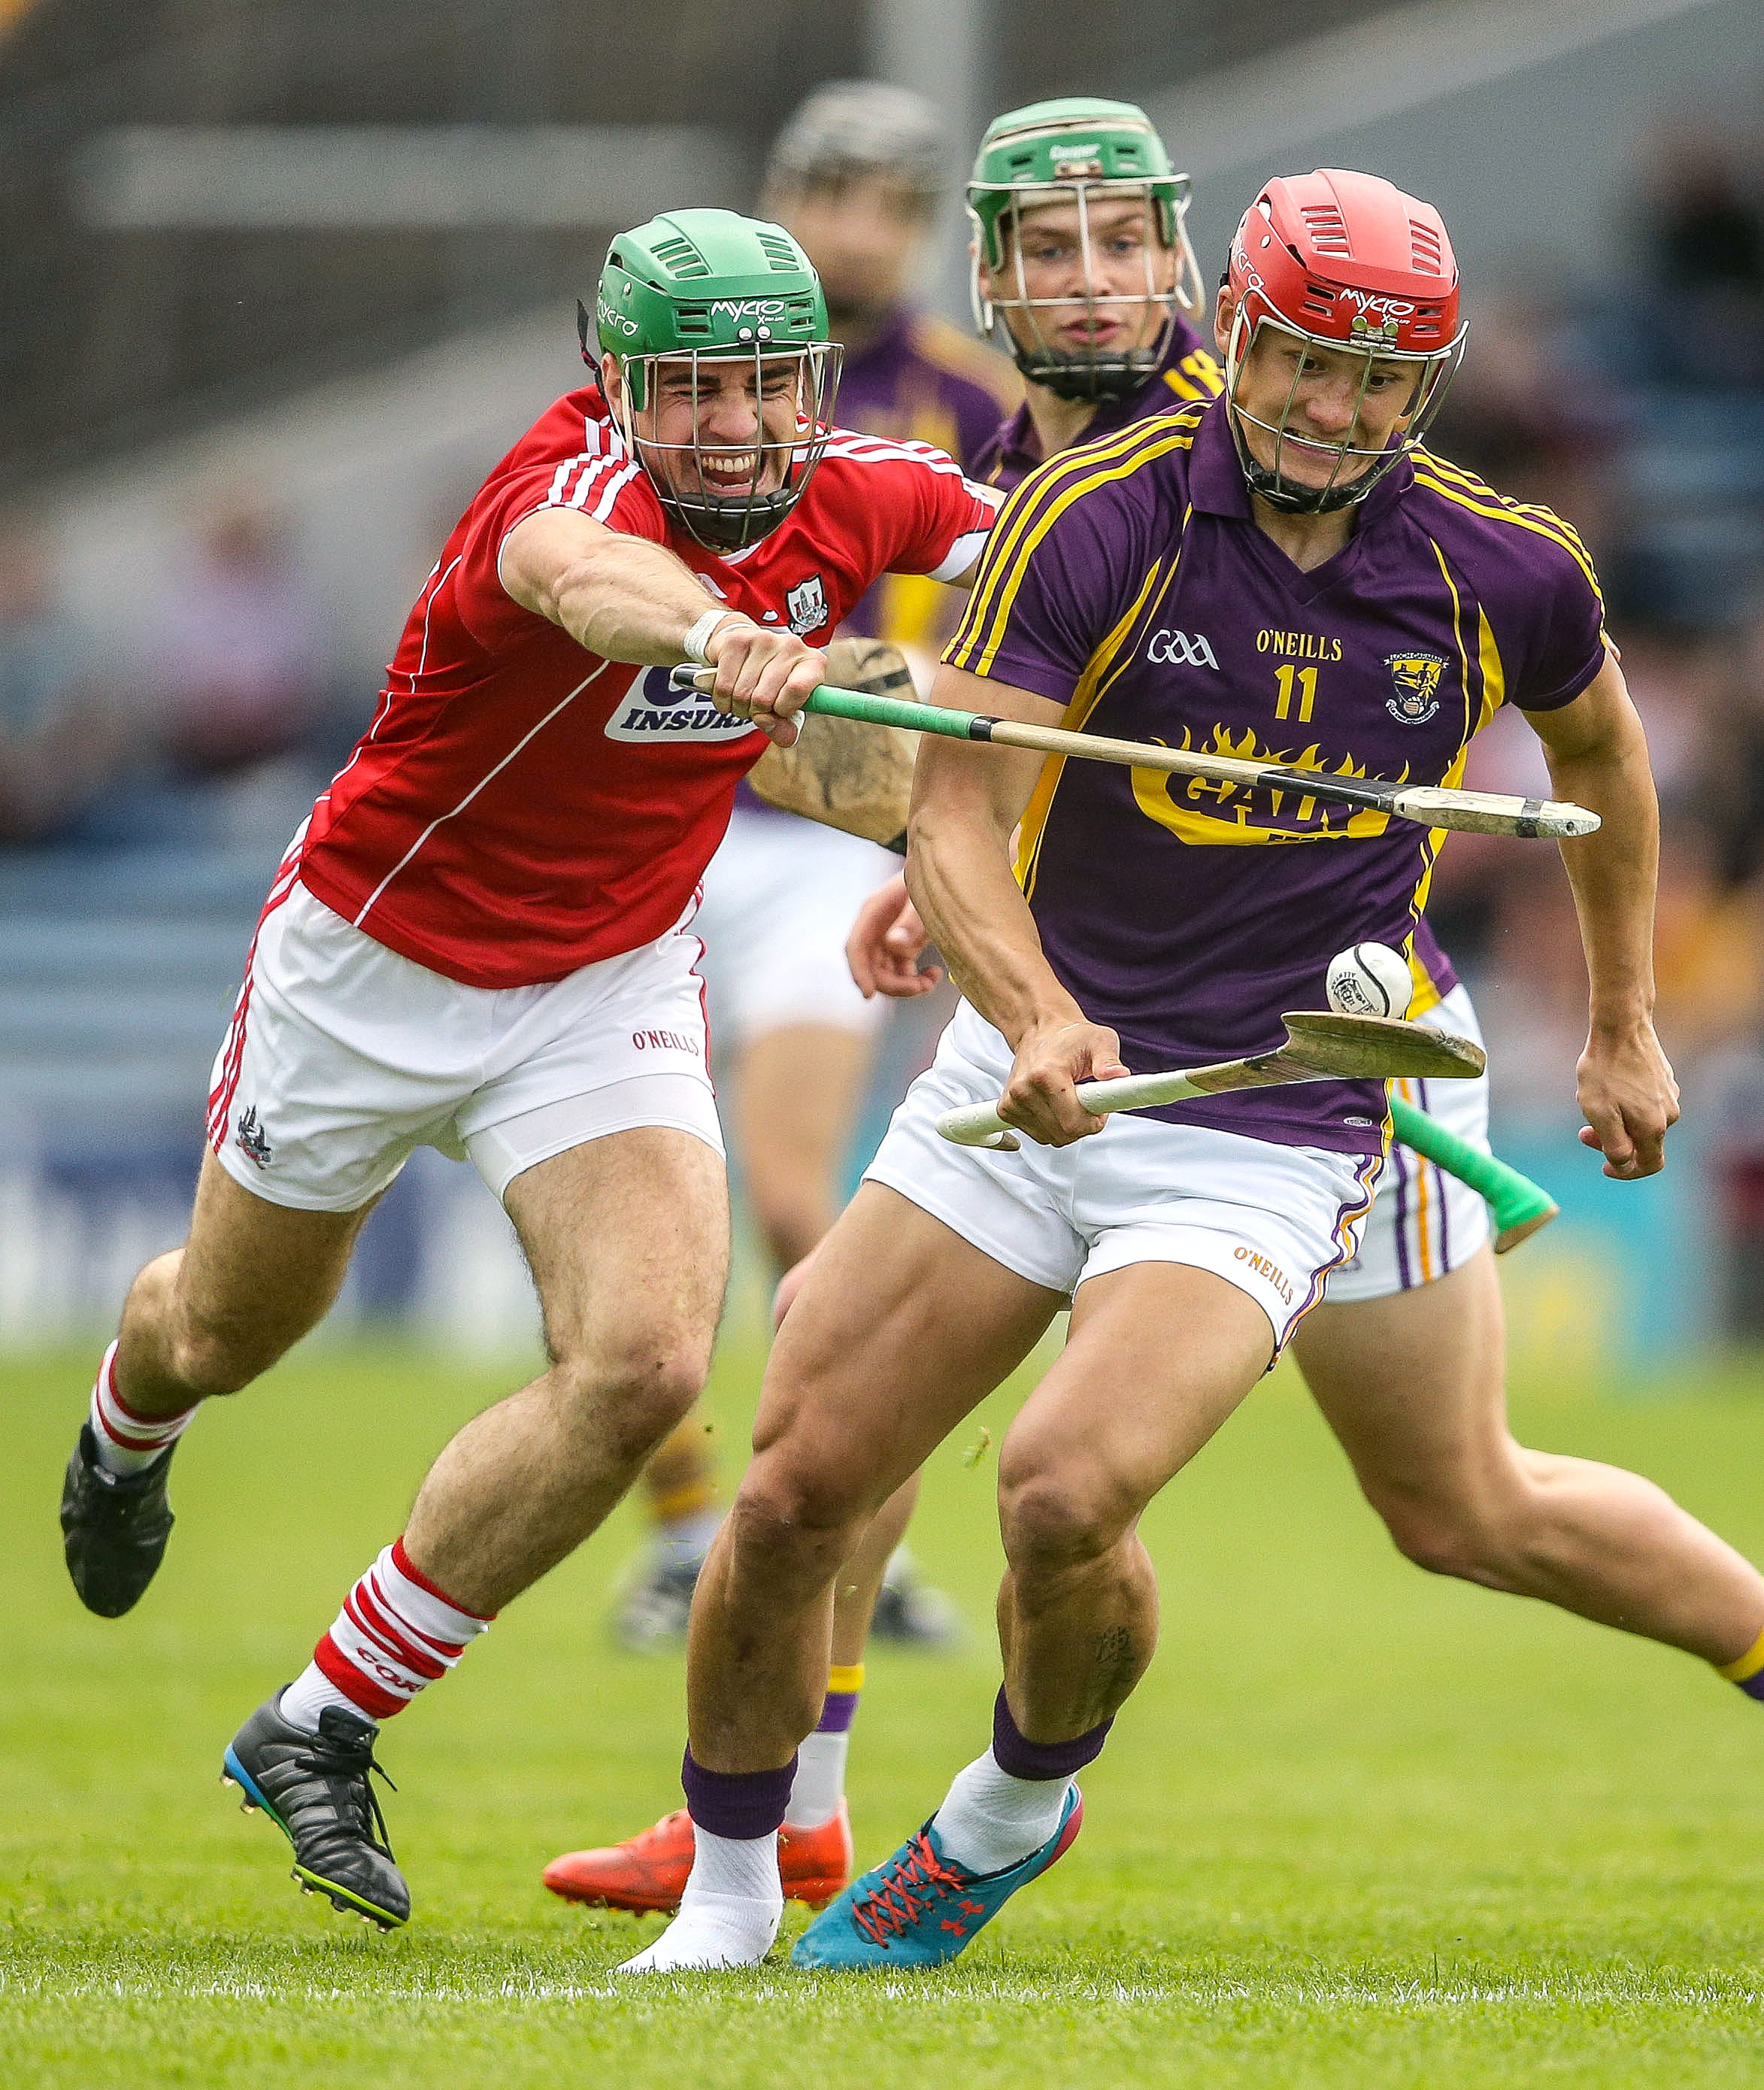 All-Ireland Senior Hurling Championship Qualifiers Round 2, Semple Stadium, Thurles, Tipperary 9/7/2016 Cork vs Wexford Cork's William Egan tackles Lee Chin of Wexford Mandatory Credit ©INPHO/Cathal Noonan